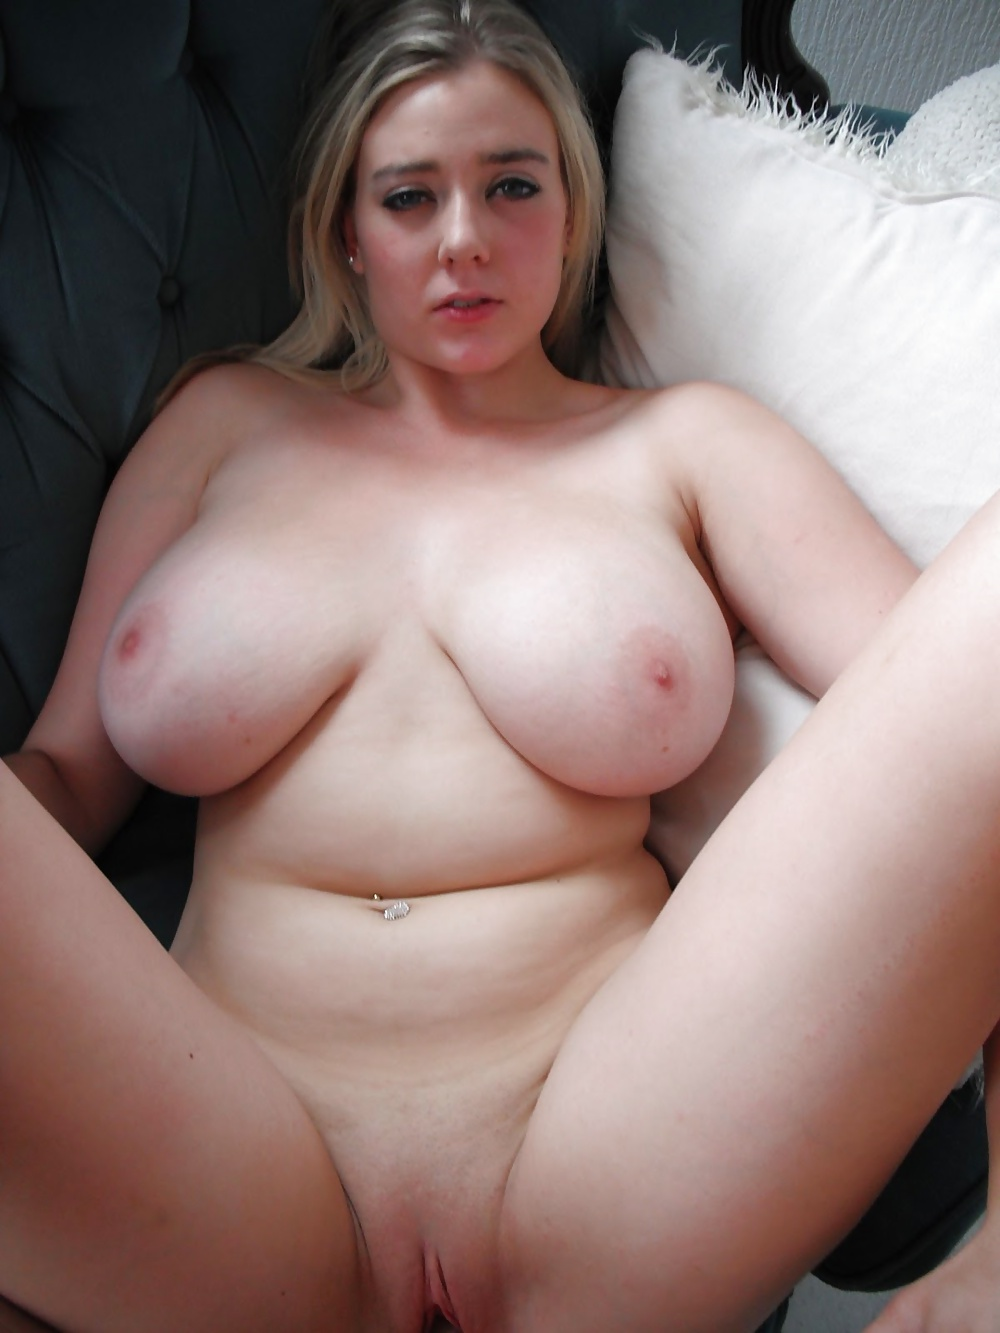 Chubby naked blonde women